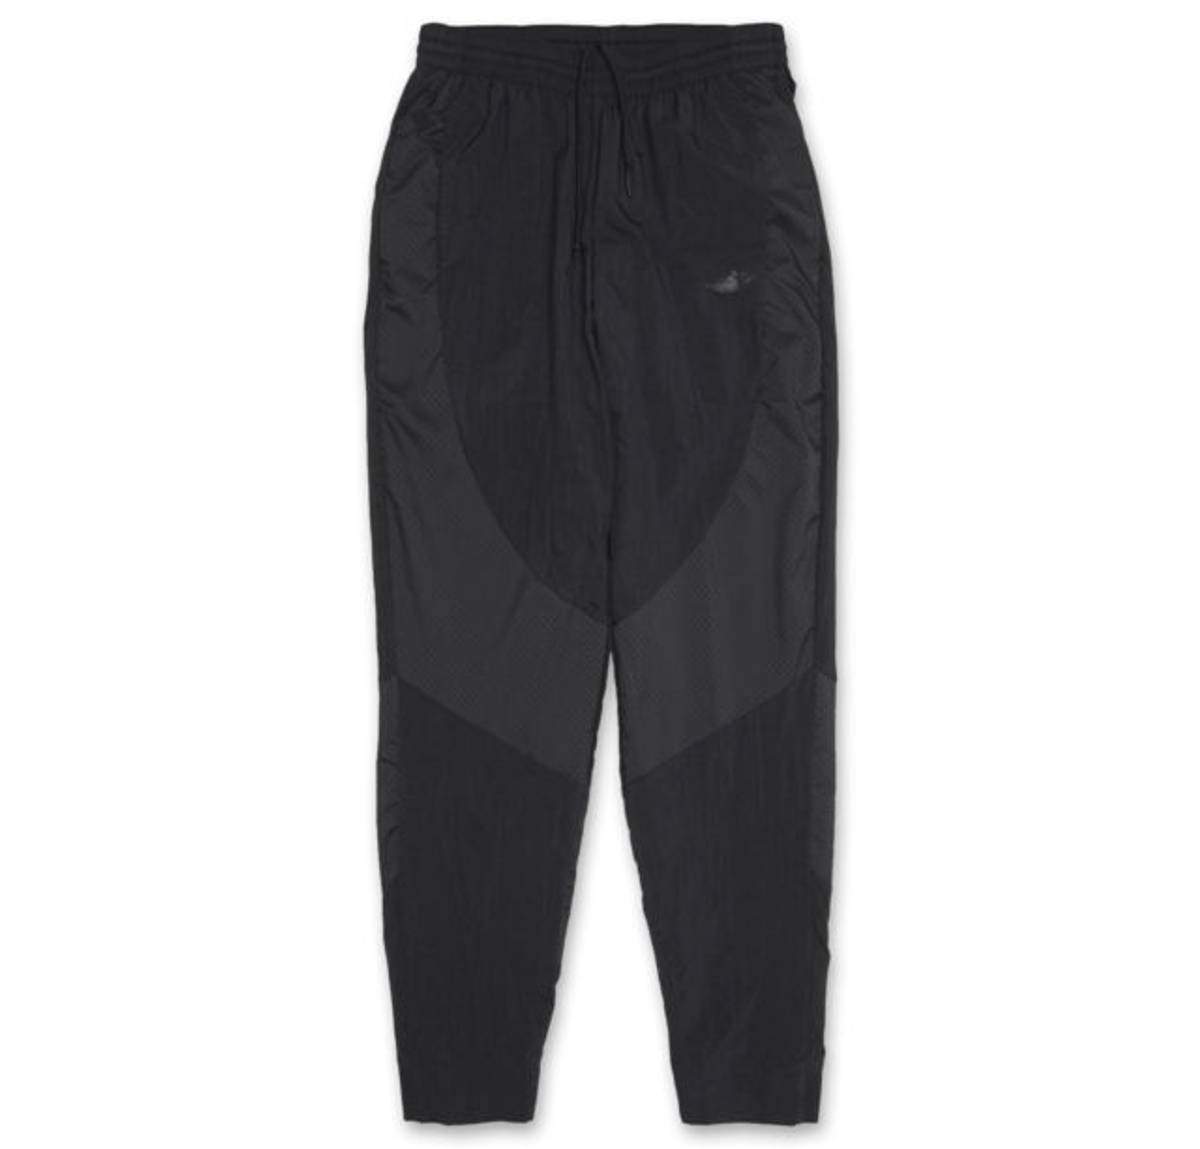 04eb5176eabb84 Nike Nike Air Jordan Wings Woven Pant Size 36 - Sweatpants   Joggers ...